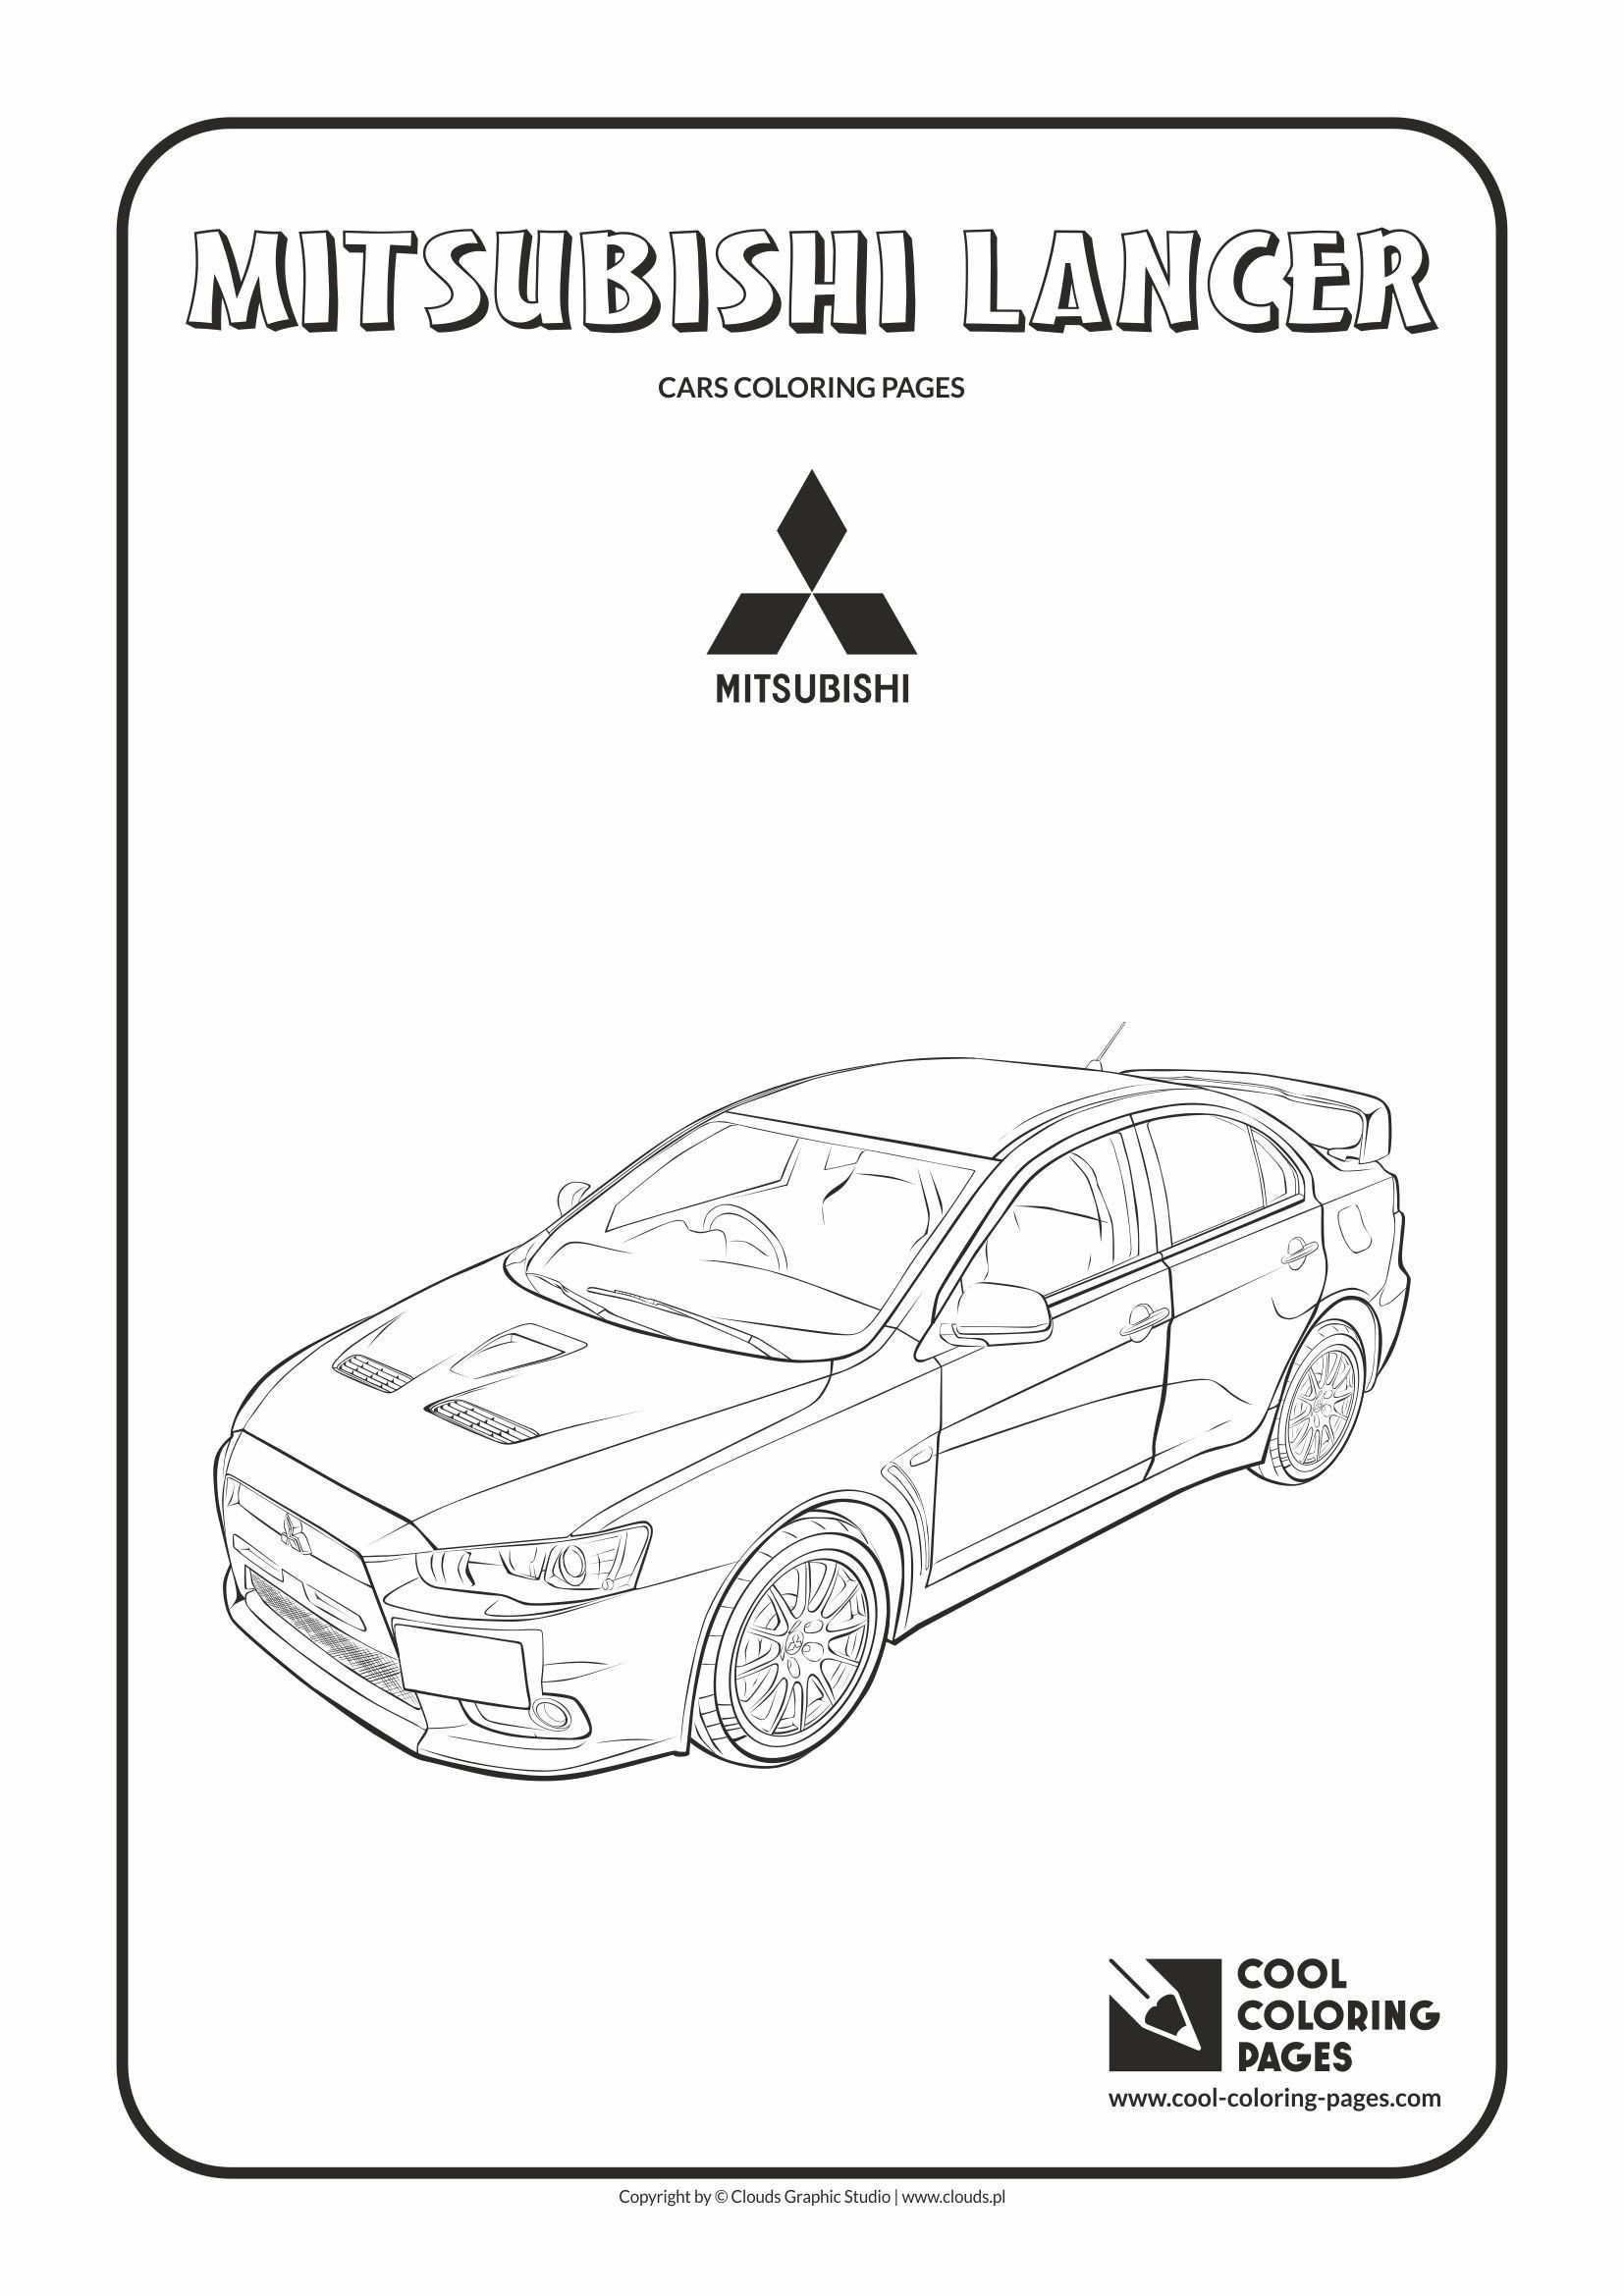 Ford Gt Coloring Pages Mercedes Benz Sls Gt3 Sportscar Coloring Page Sports Car Cars Coloring Pages Coloring Pages Cool Coloring Pages